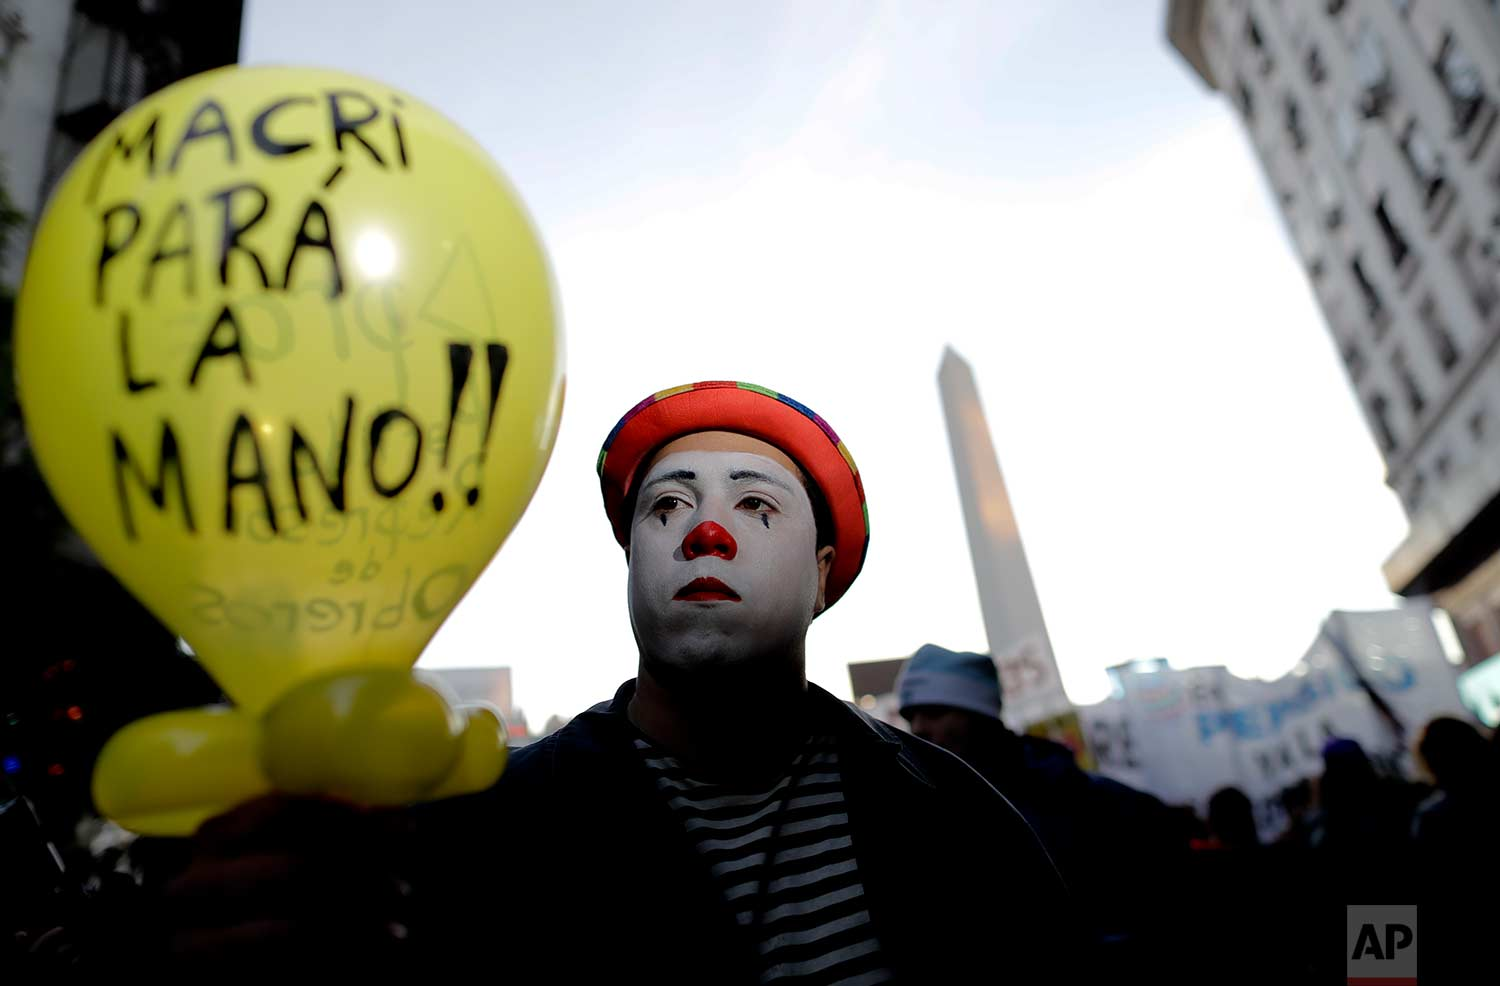 """A clown marches with a balloon with text written in Spanish that reads """"Macri, take it easy,"""" in Buenos Aires, Argentina, Tuesday, July 18, 2017. (AP Photo/Natacha Pisarenko)"""